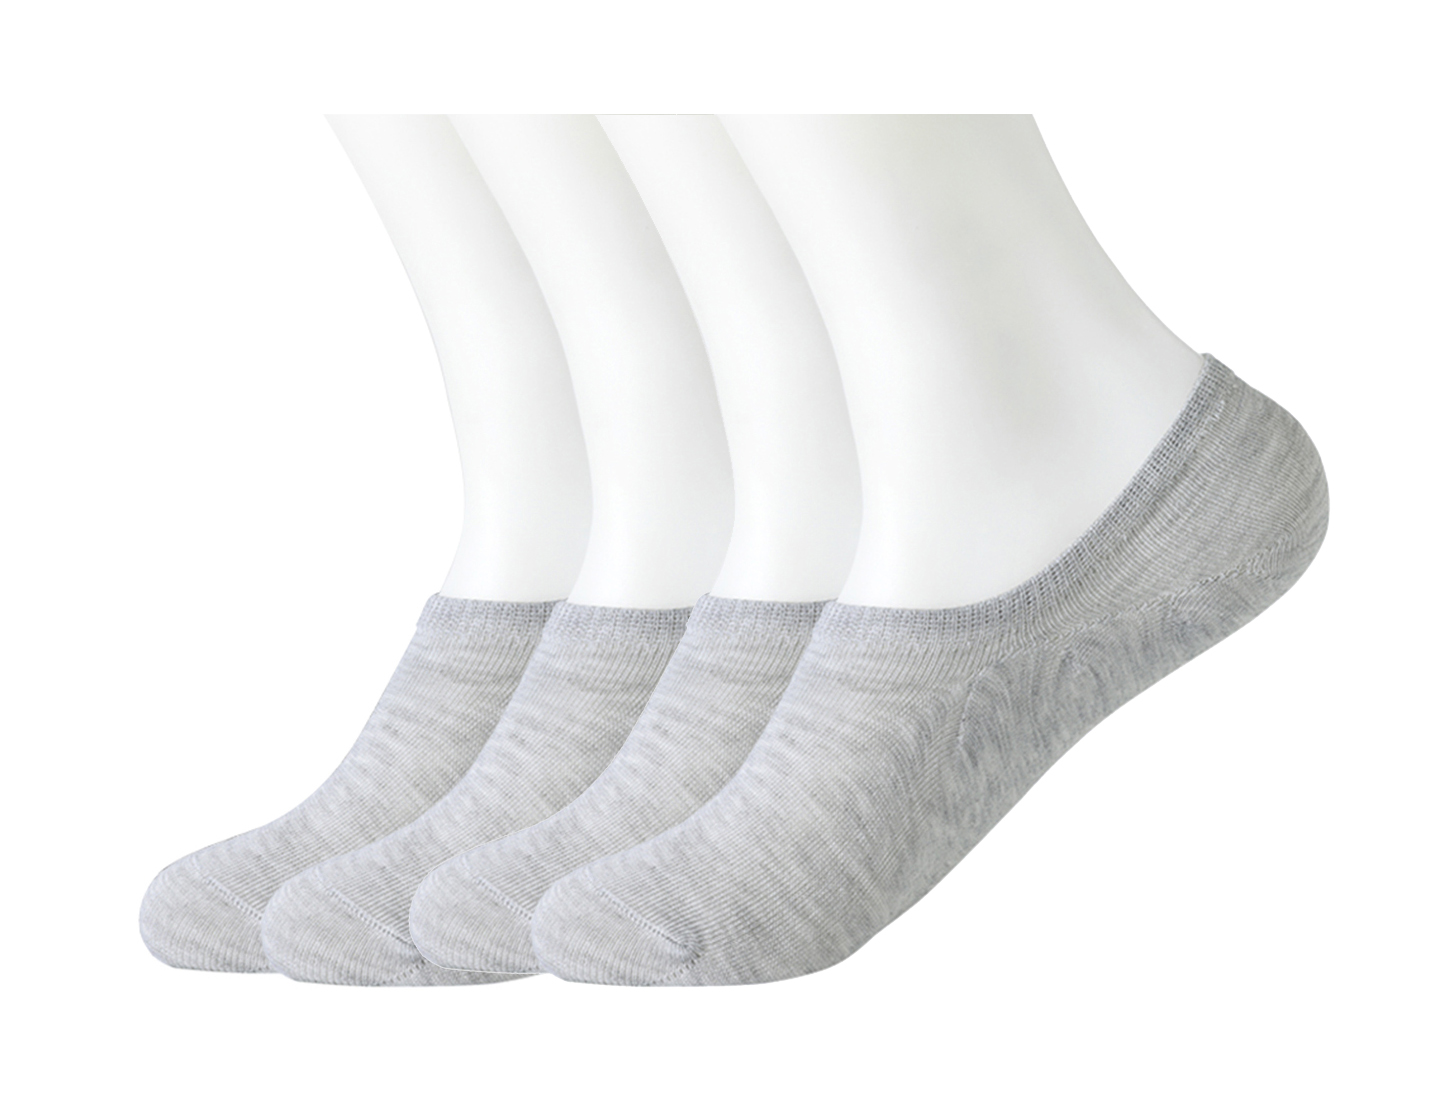 4 Pairs Light Gray Stretchy Sport Low Cut No Show Footie Boat Socks for Men